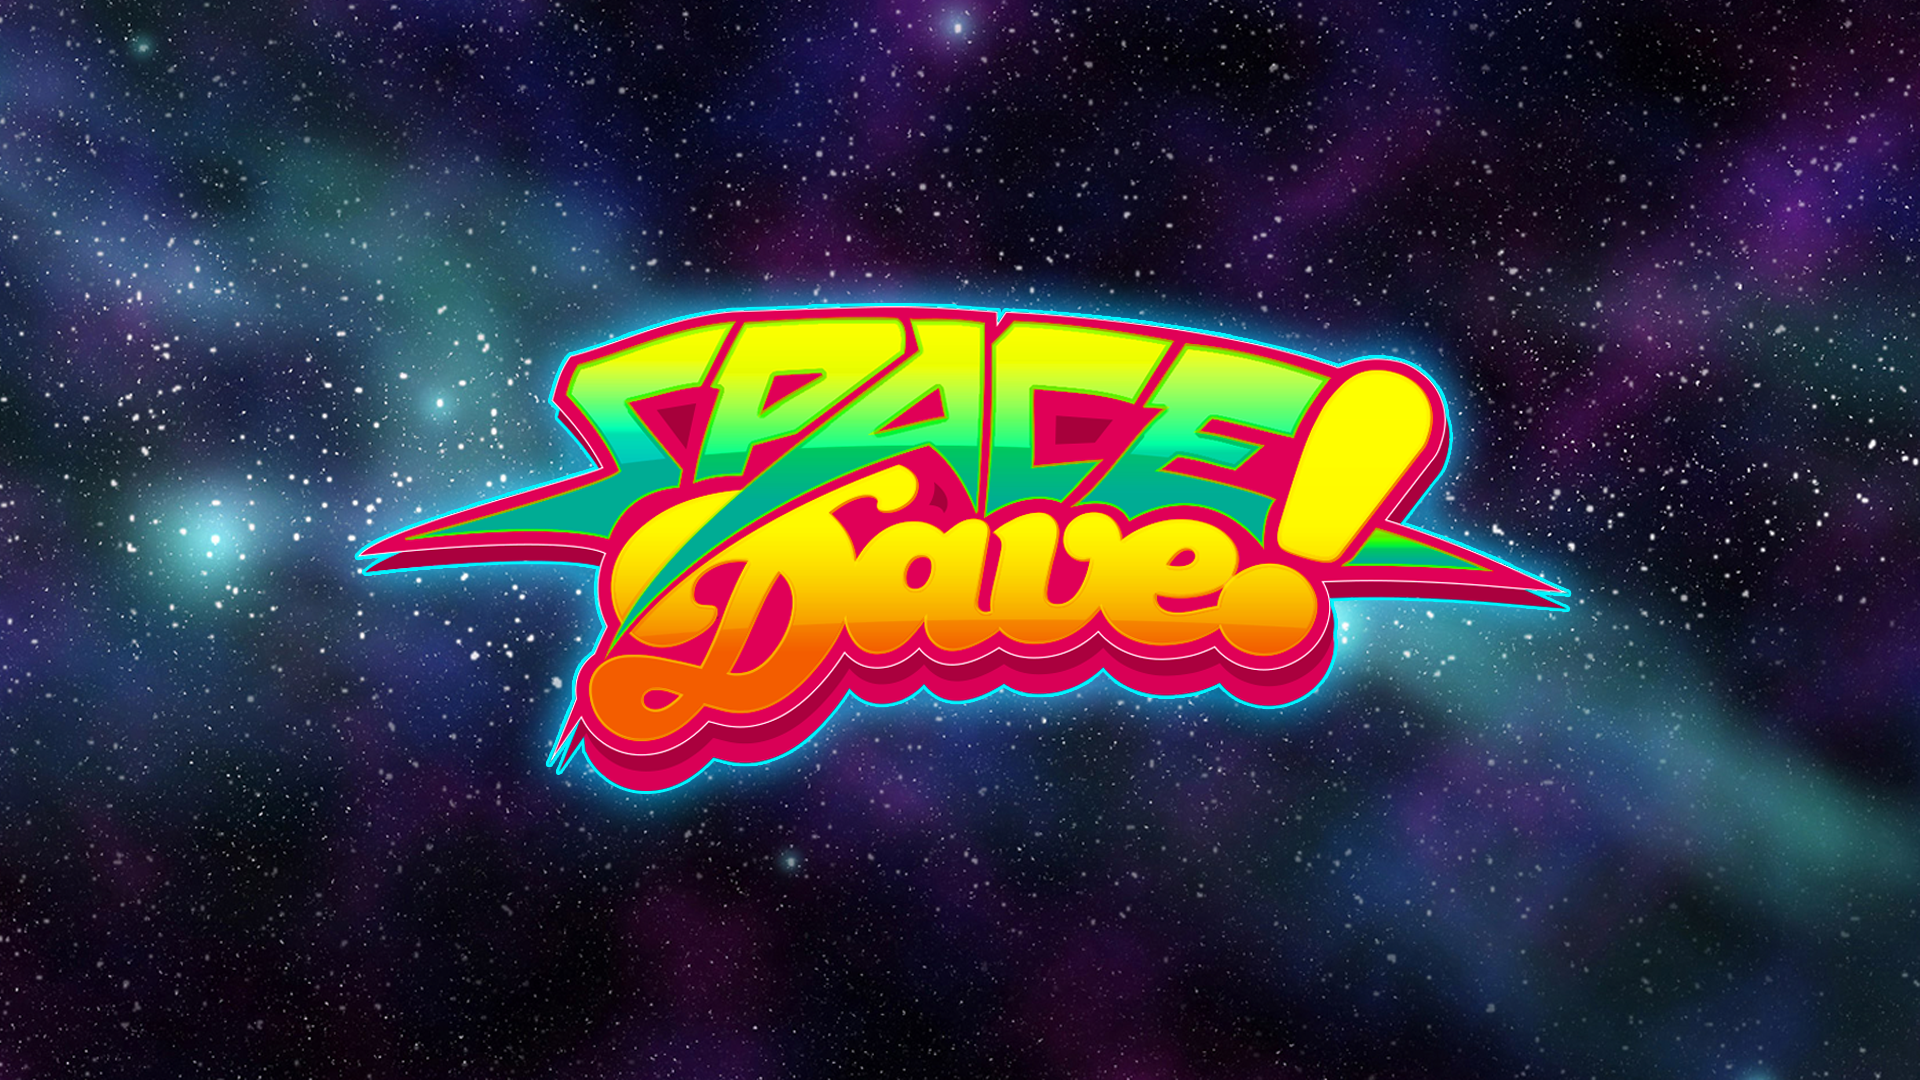 Space Dave!